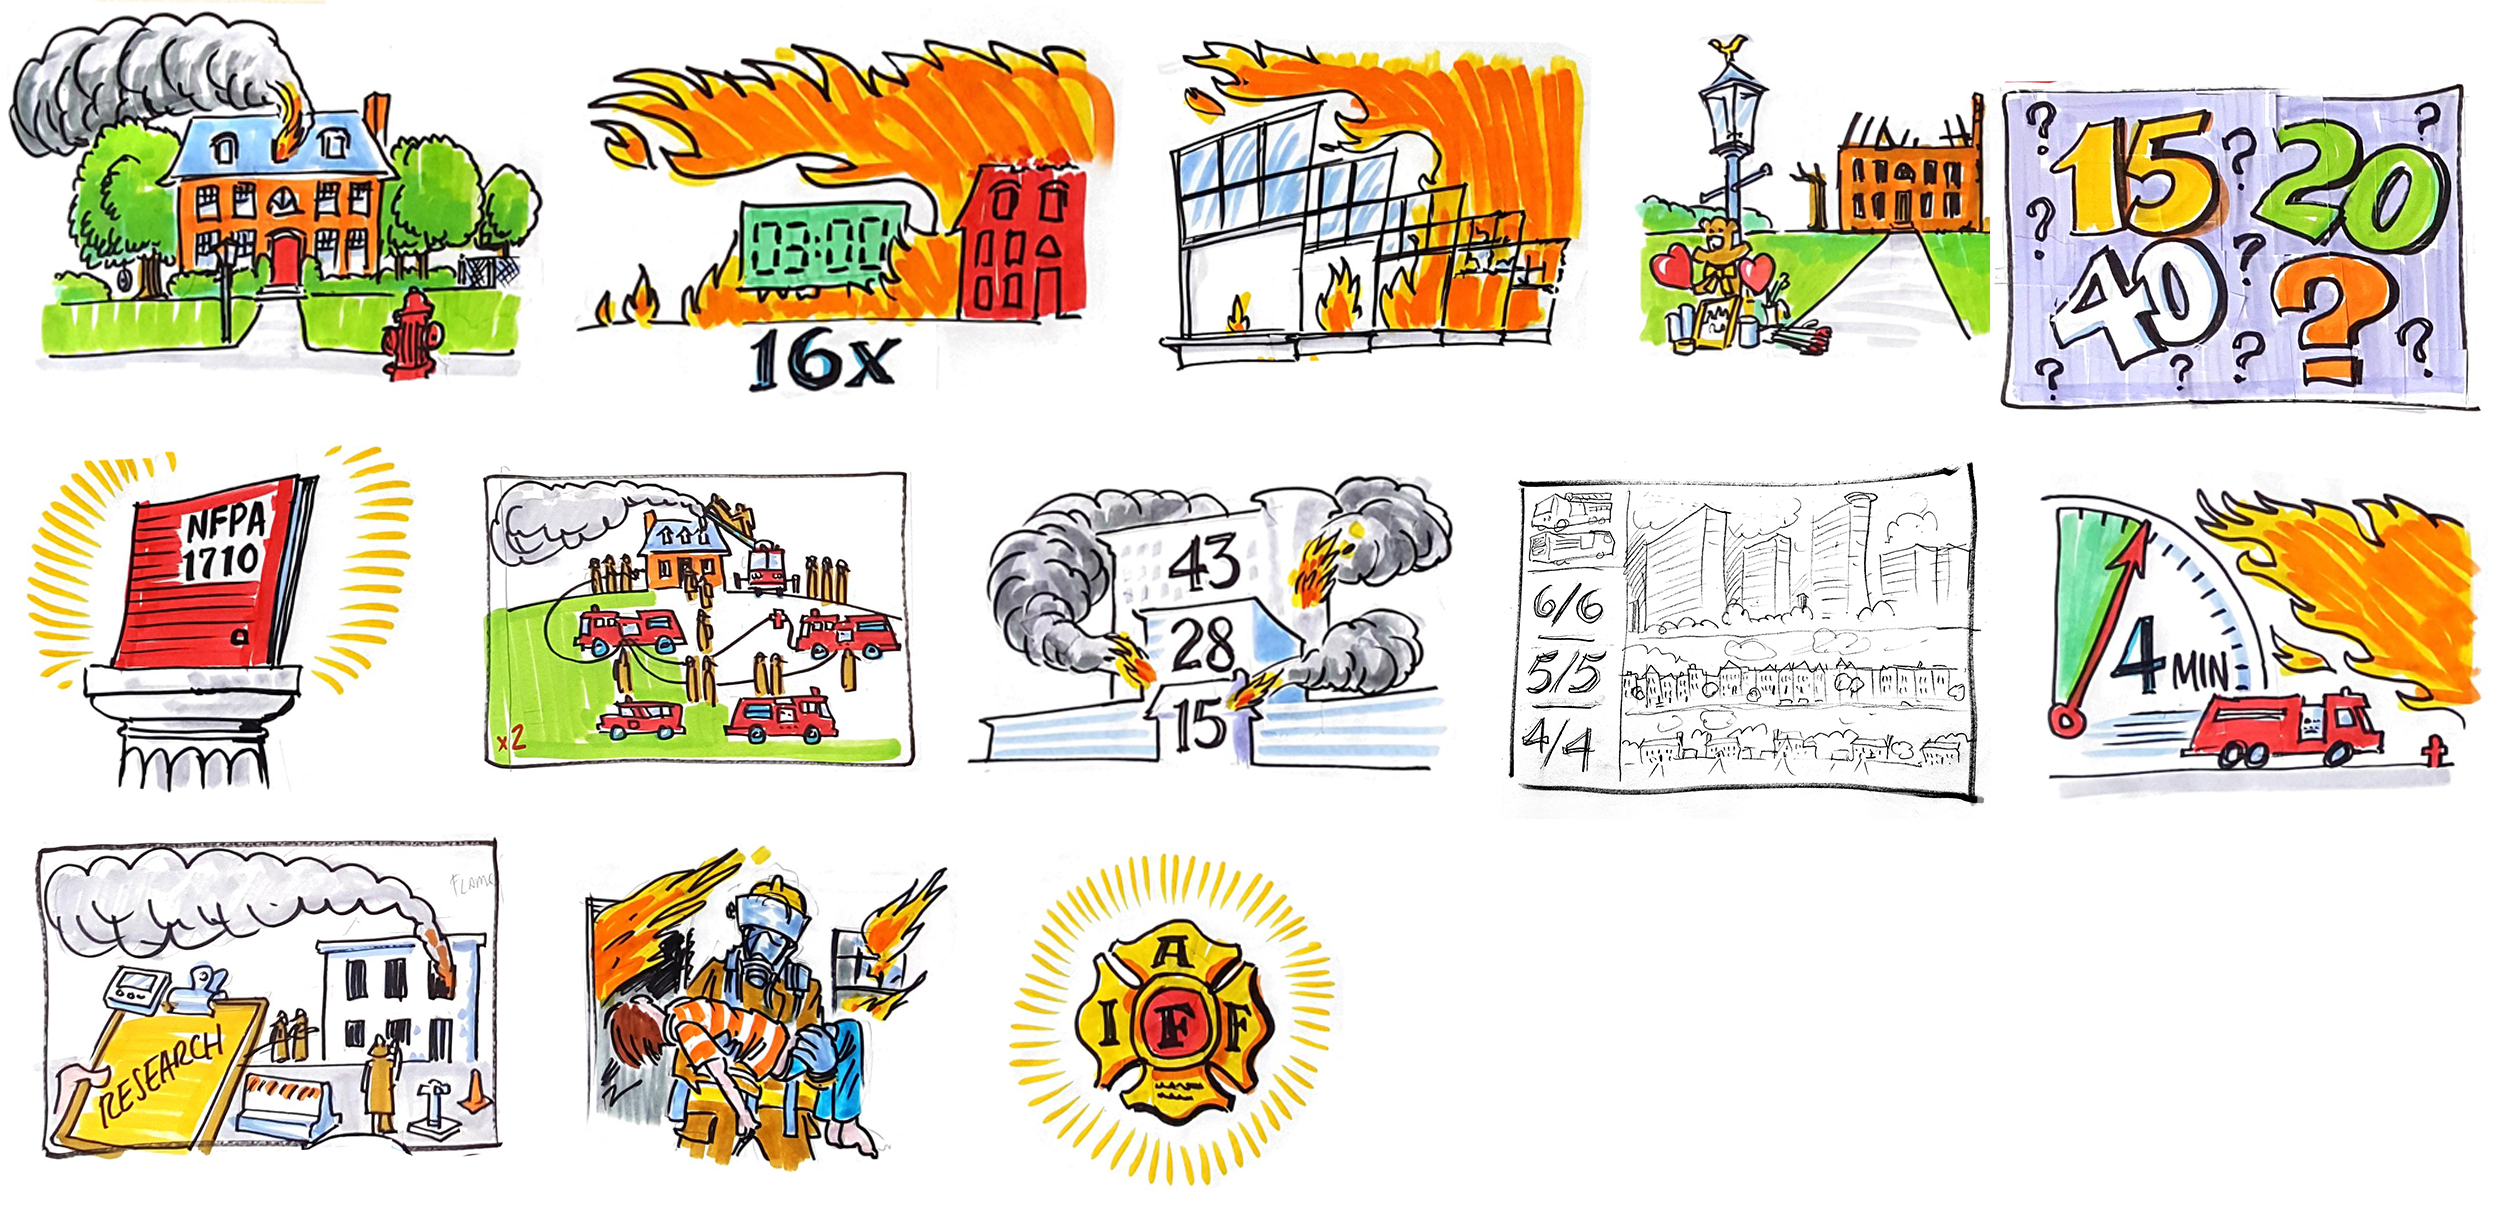 Hand-Drawn Video - Storyboard for the International Association of Fire Fighters - 4' x 8.25'